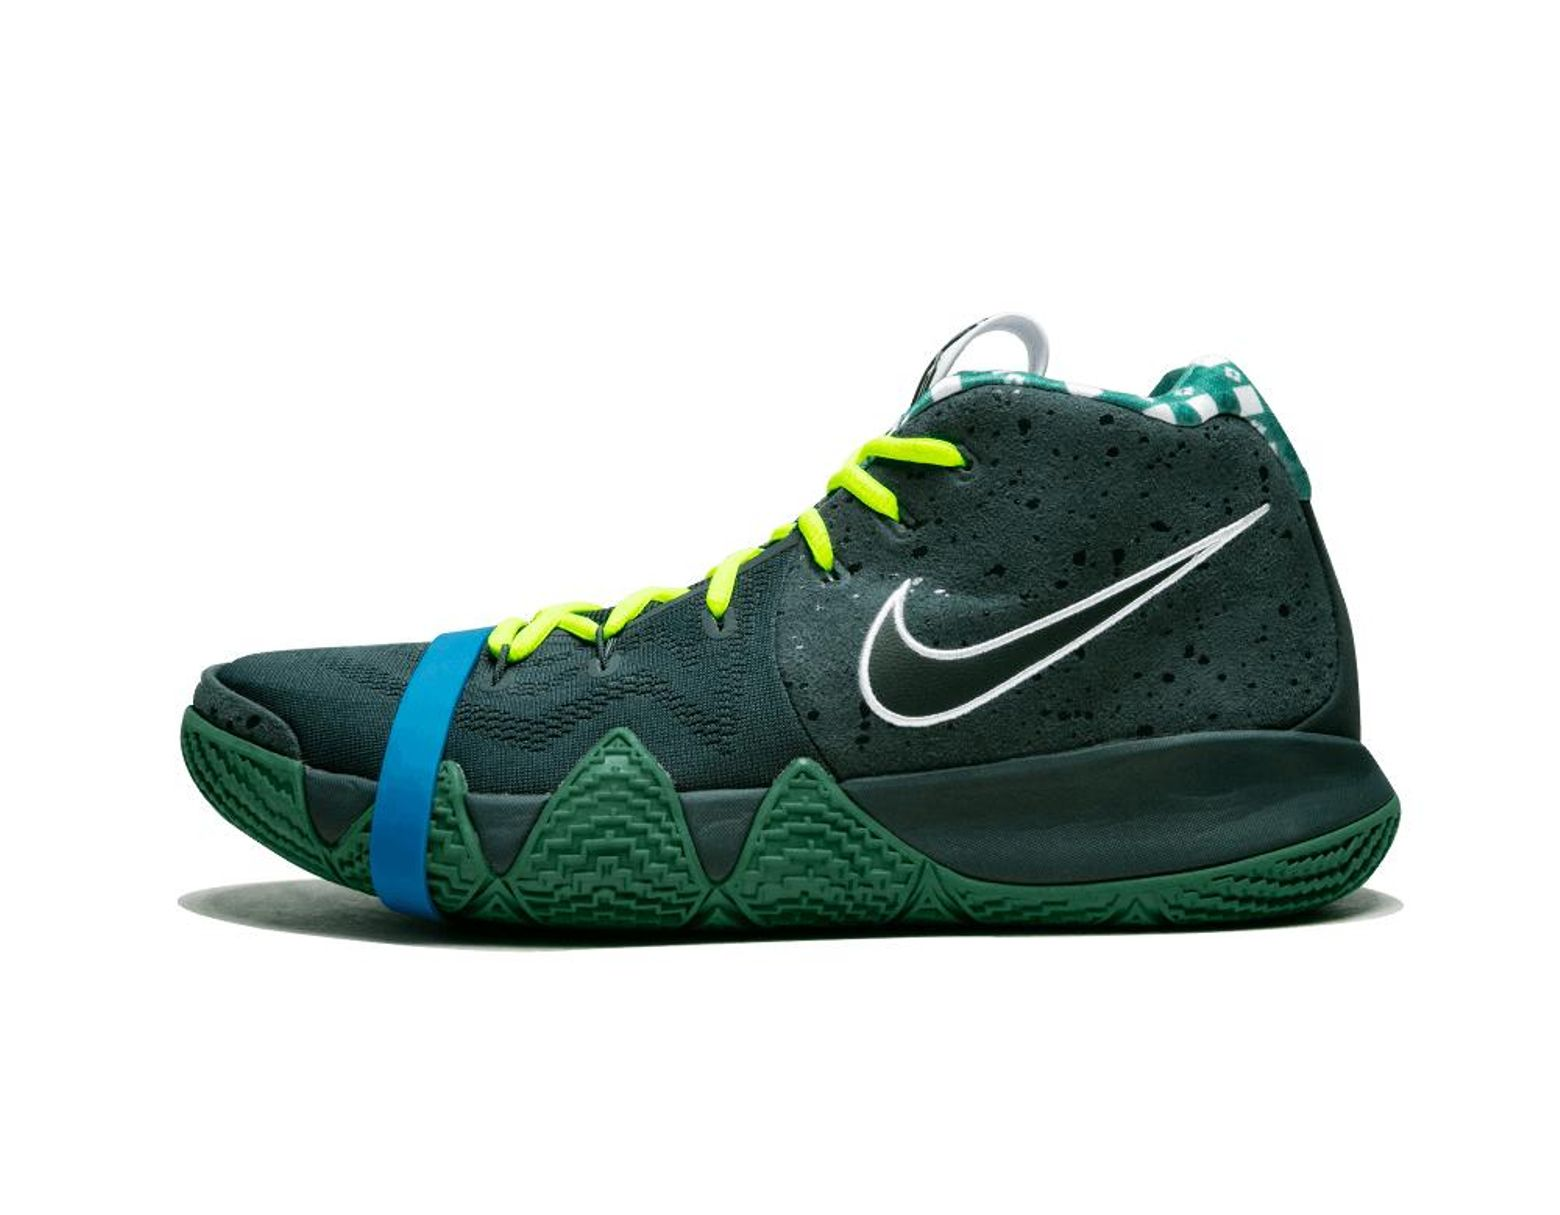 f64a5715126b Lyst - Nike Kyrie 4 Tv Pe 15 in Green for Men - Save 41%